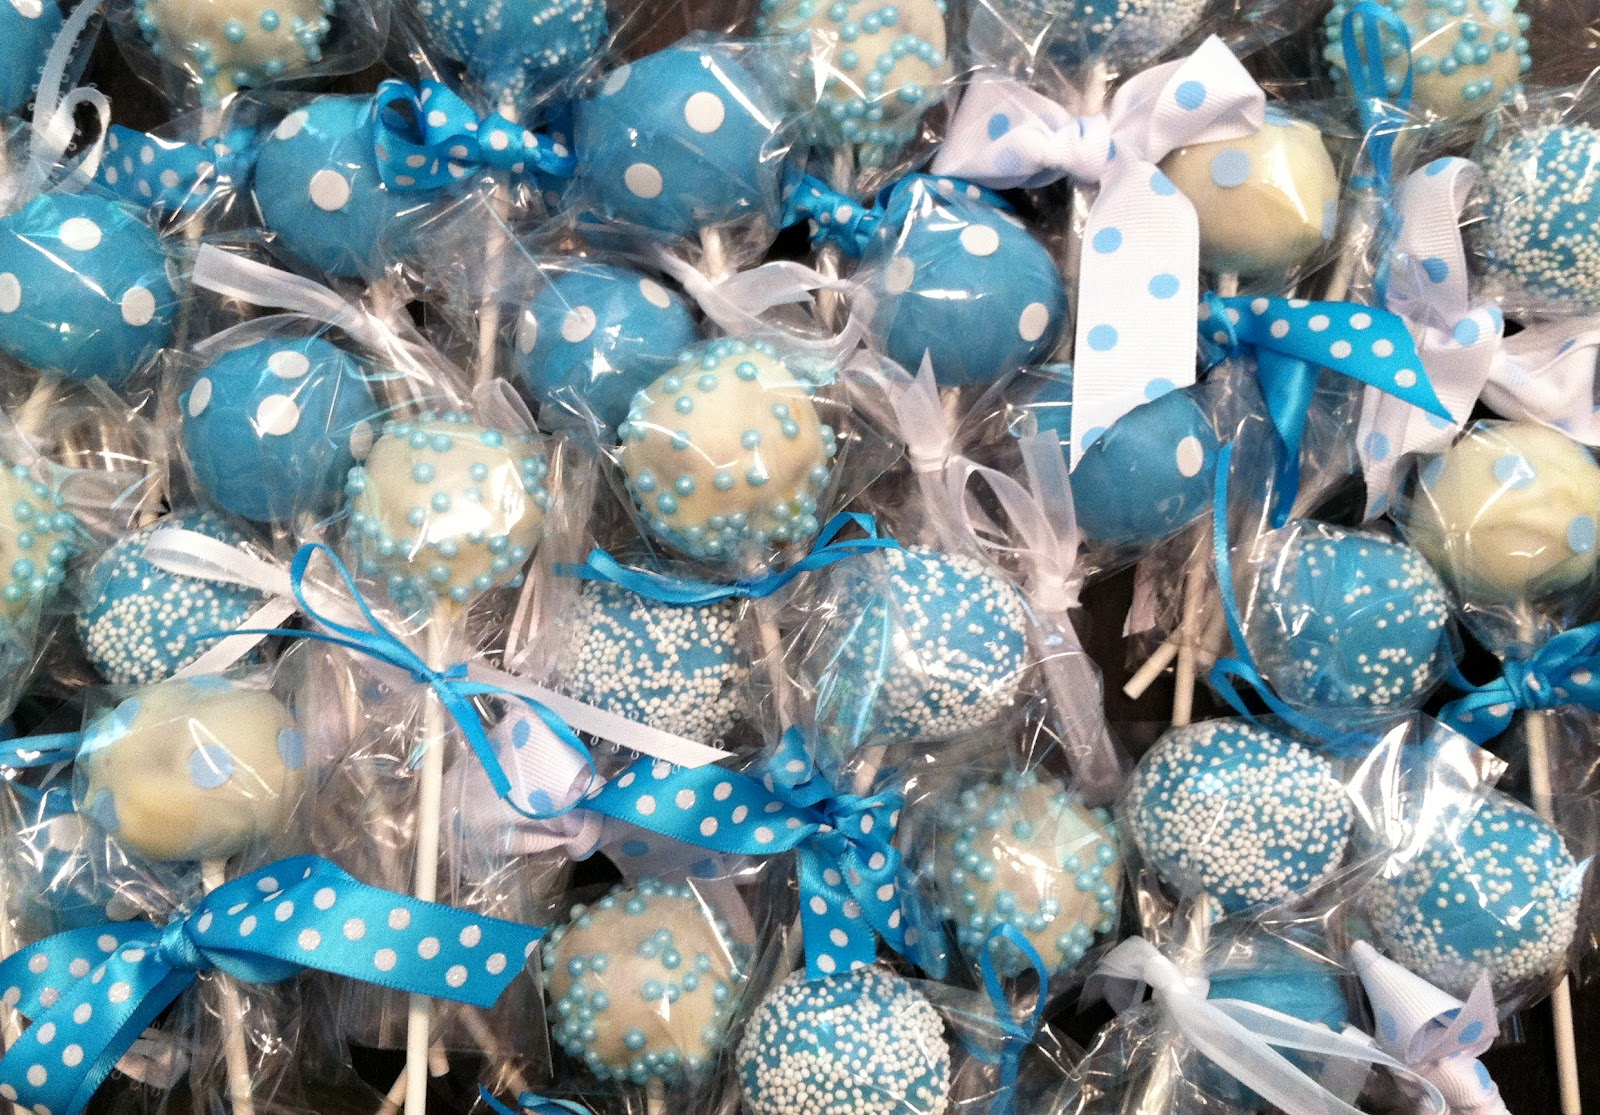 Ally s Cake Pop Shop!: A few more orders!